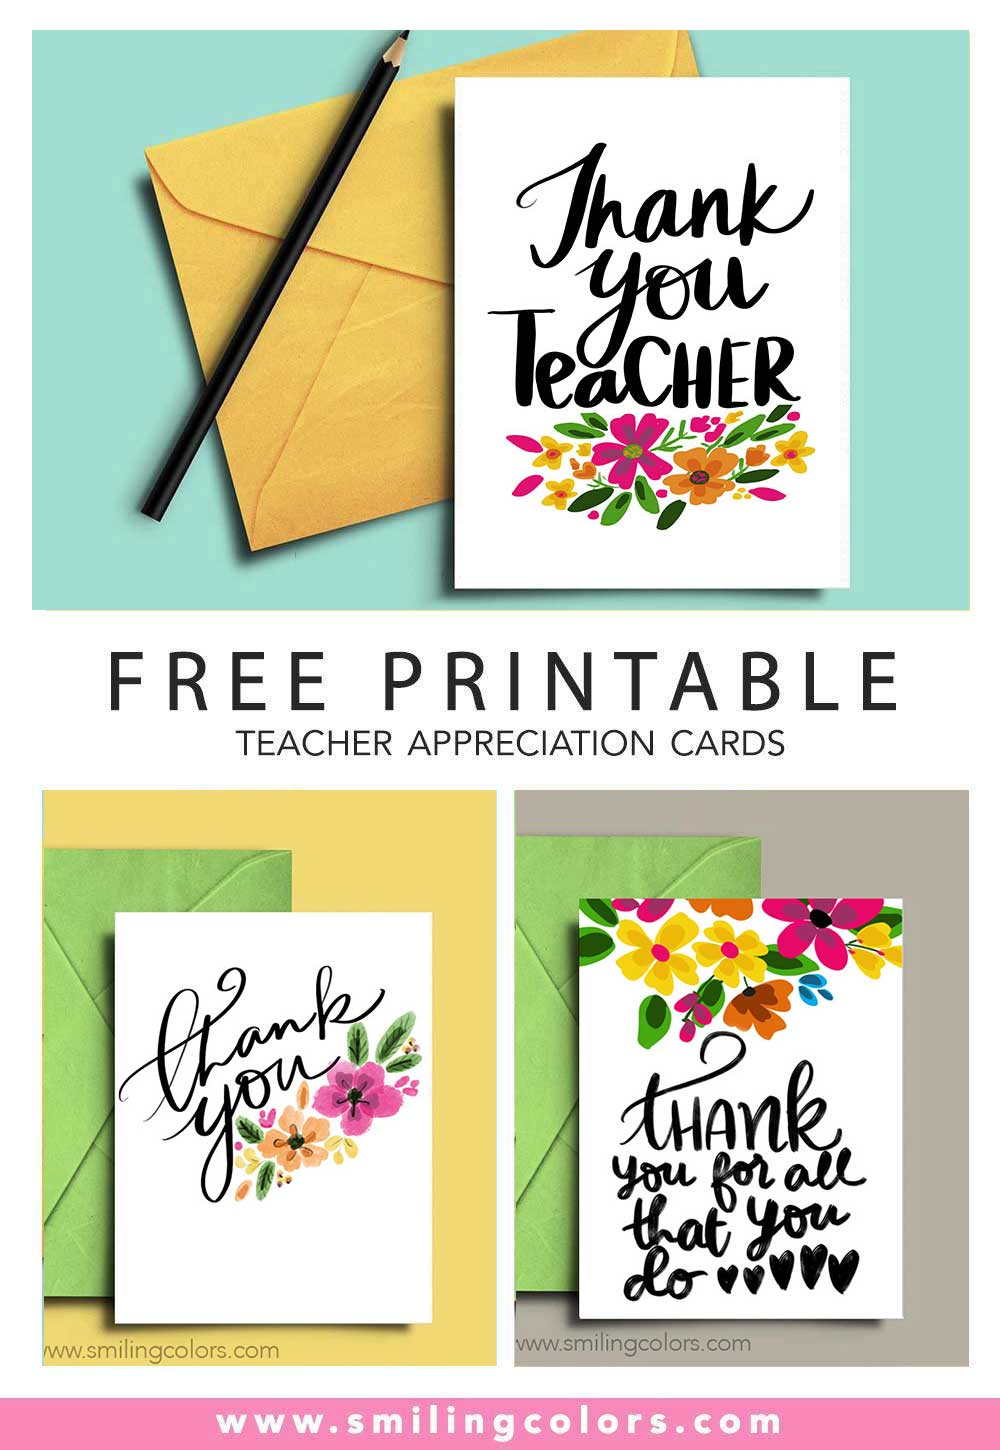 photo relating to Printable Thank You Cards Free named Thank by yourself instructor: A fixed of No cost printable observe playing cards